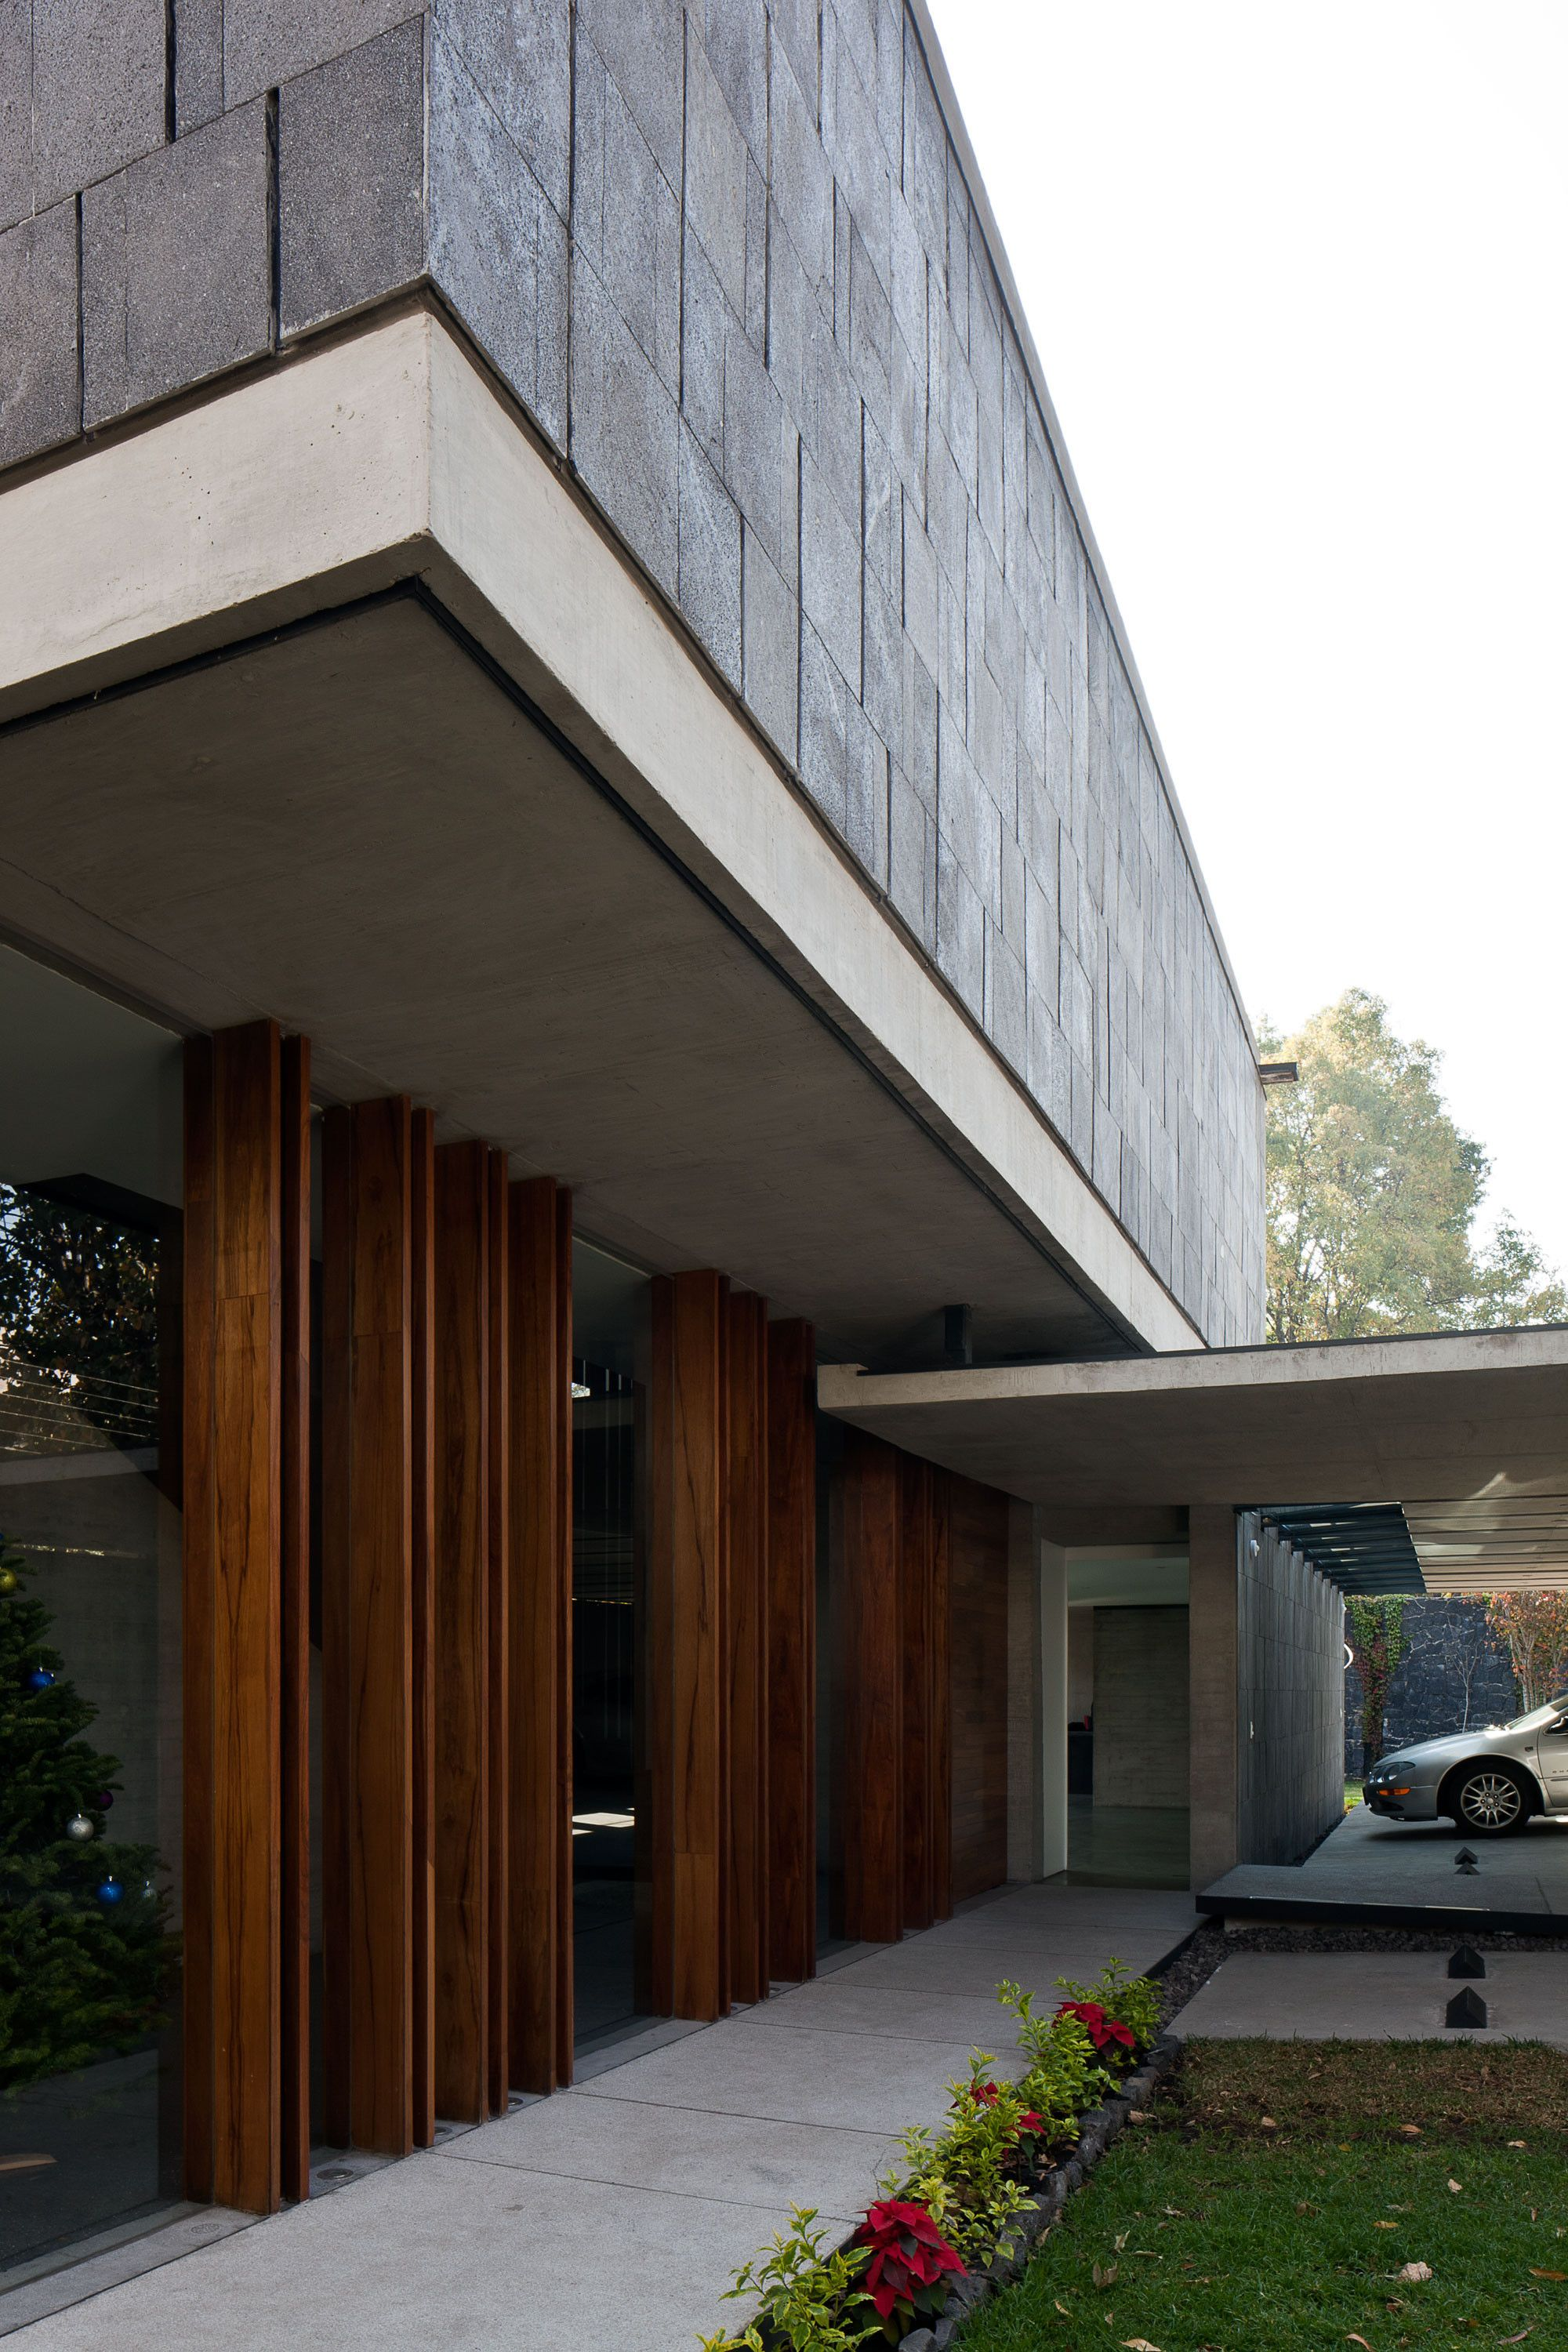 Fuentes House,© Onnis Luque